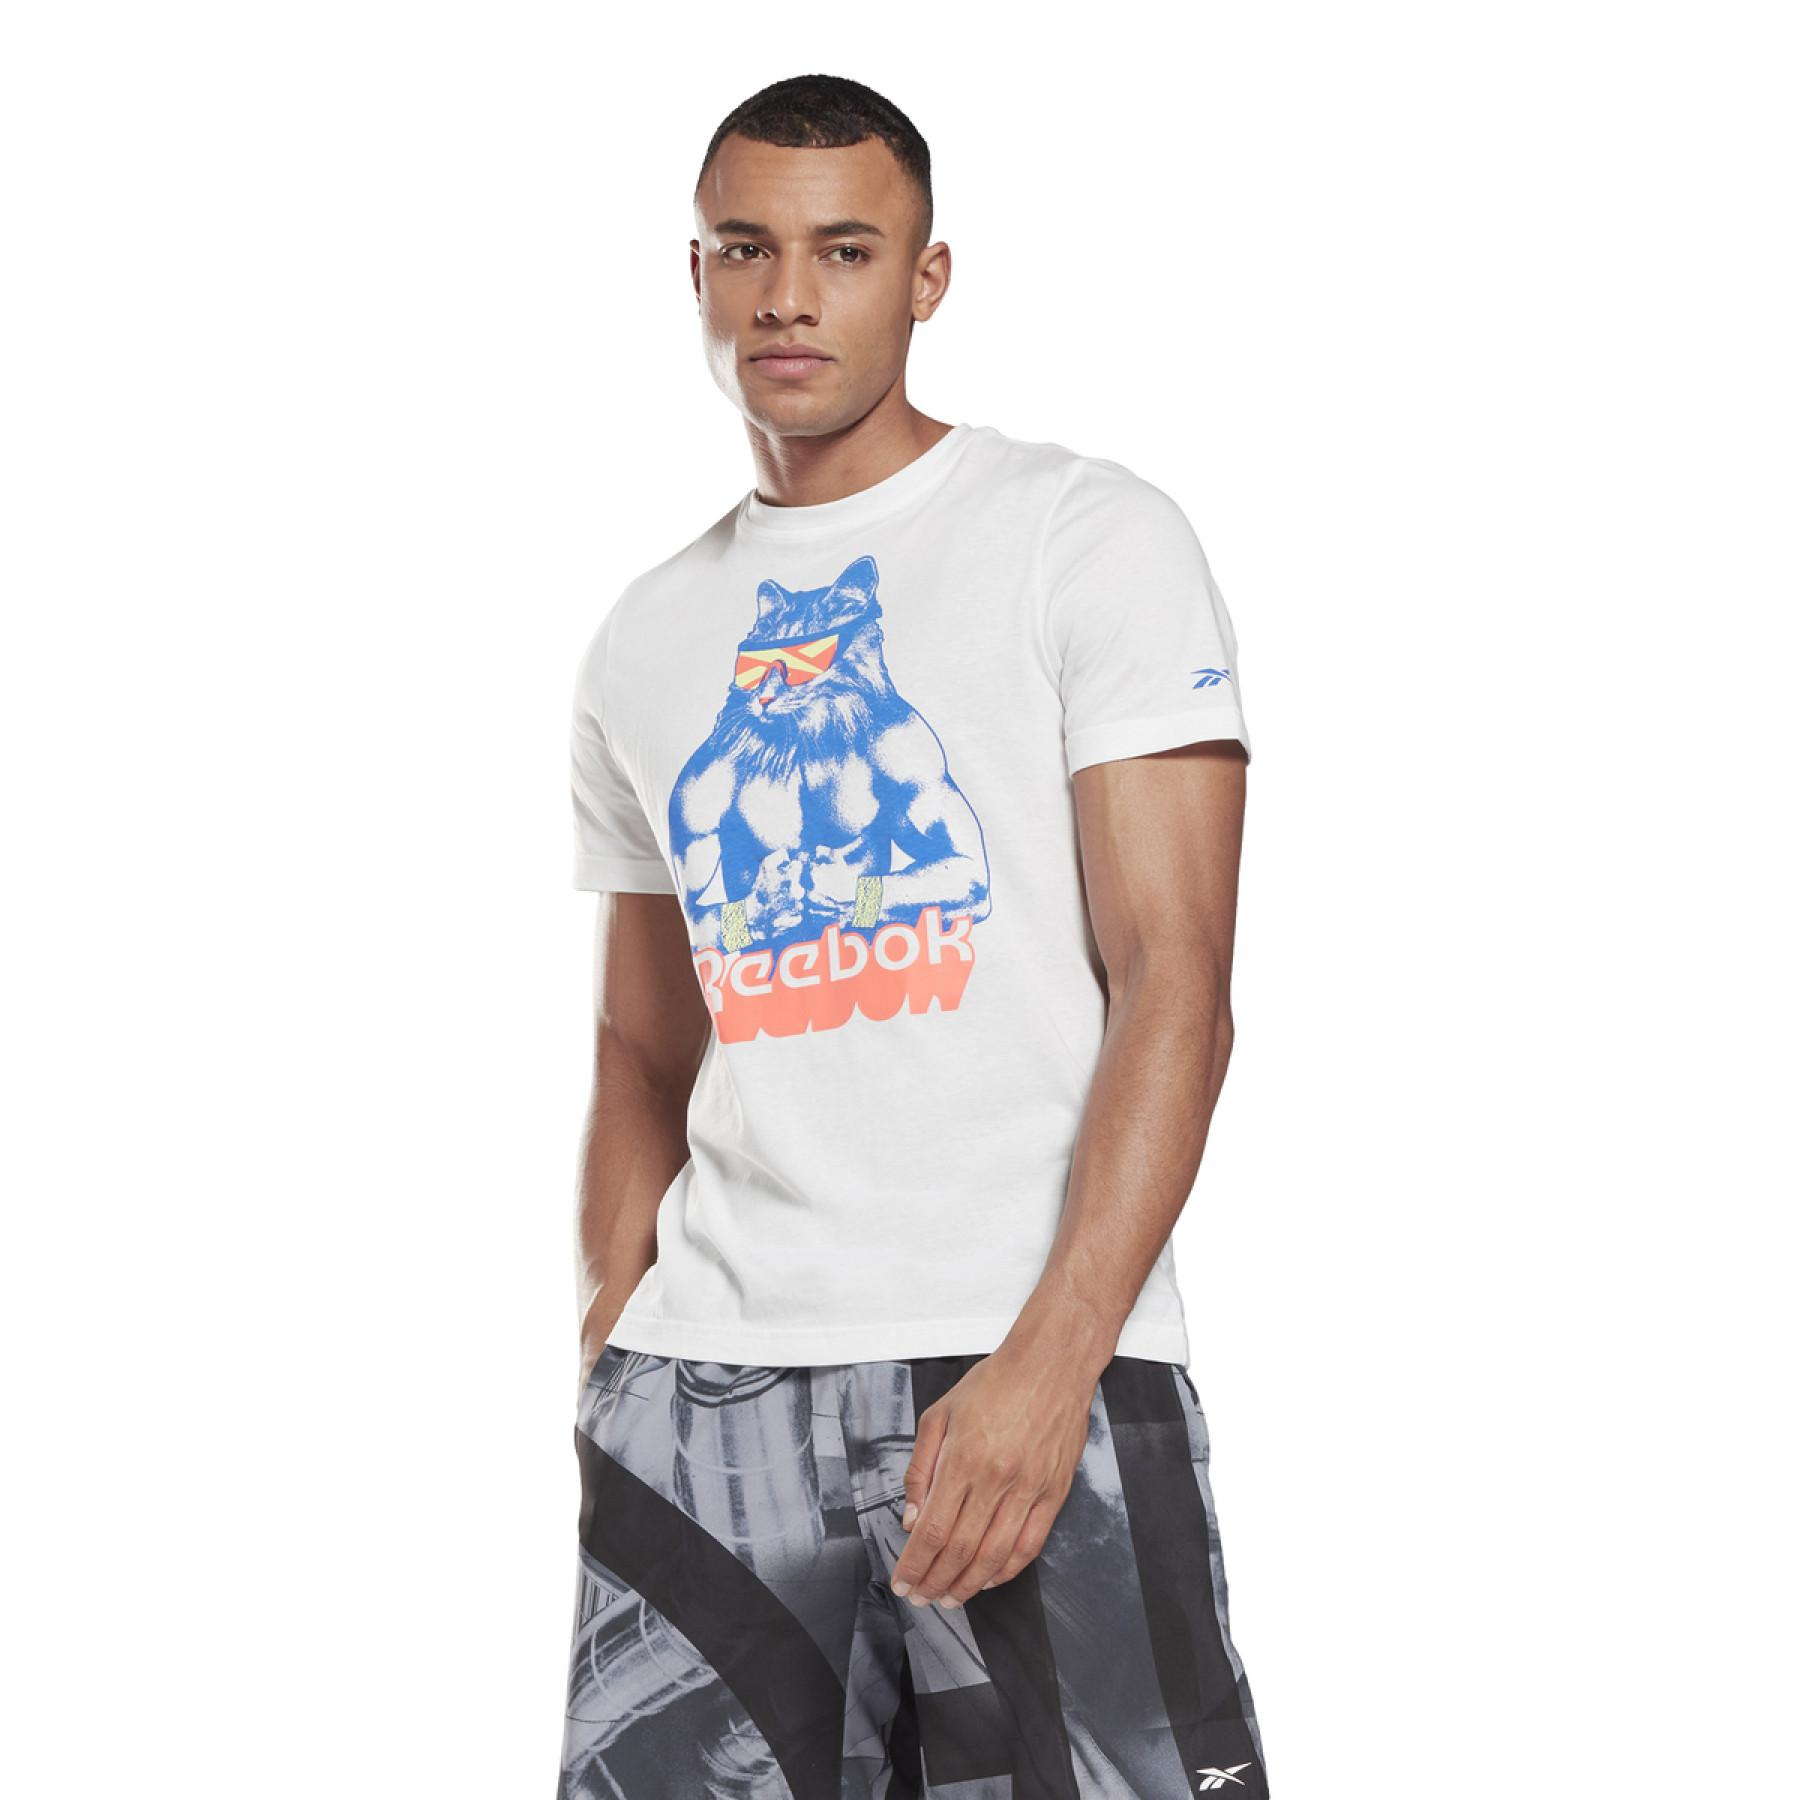 Reebok Gritty Kitty T-shirt